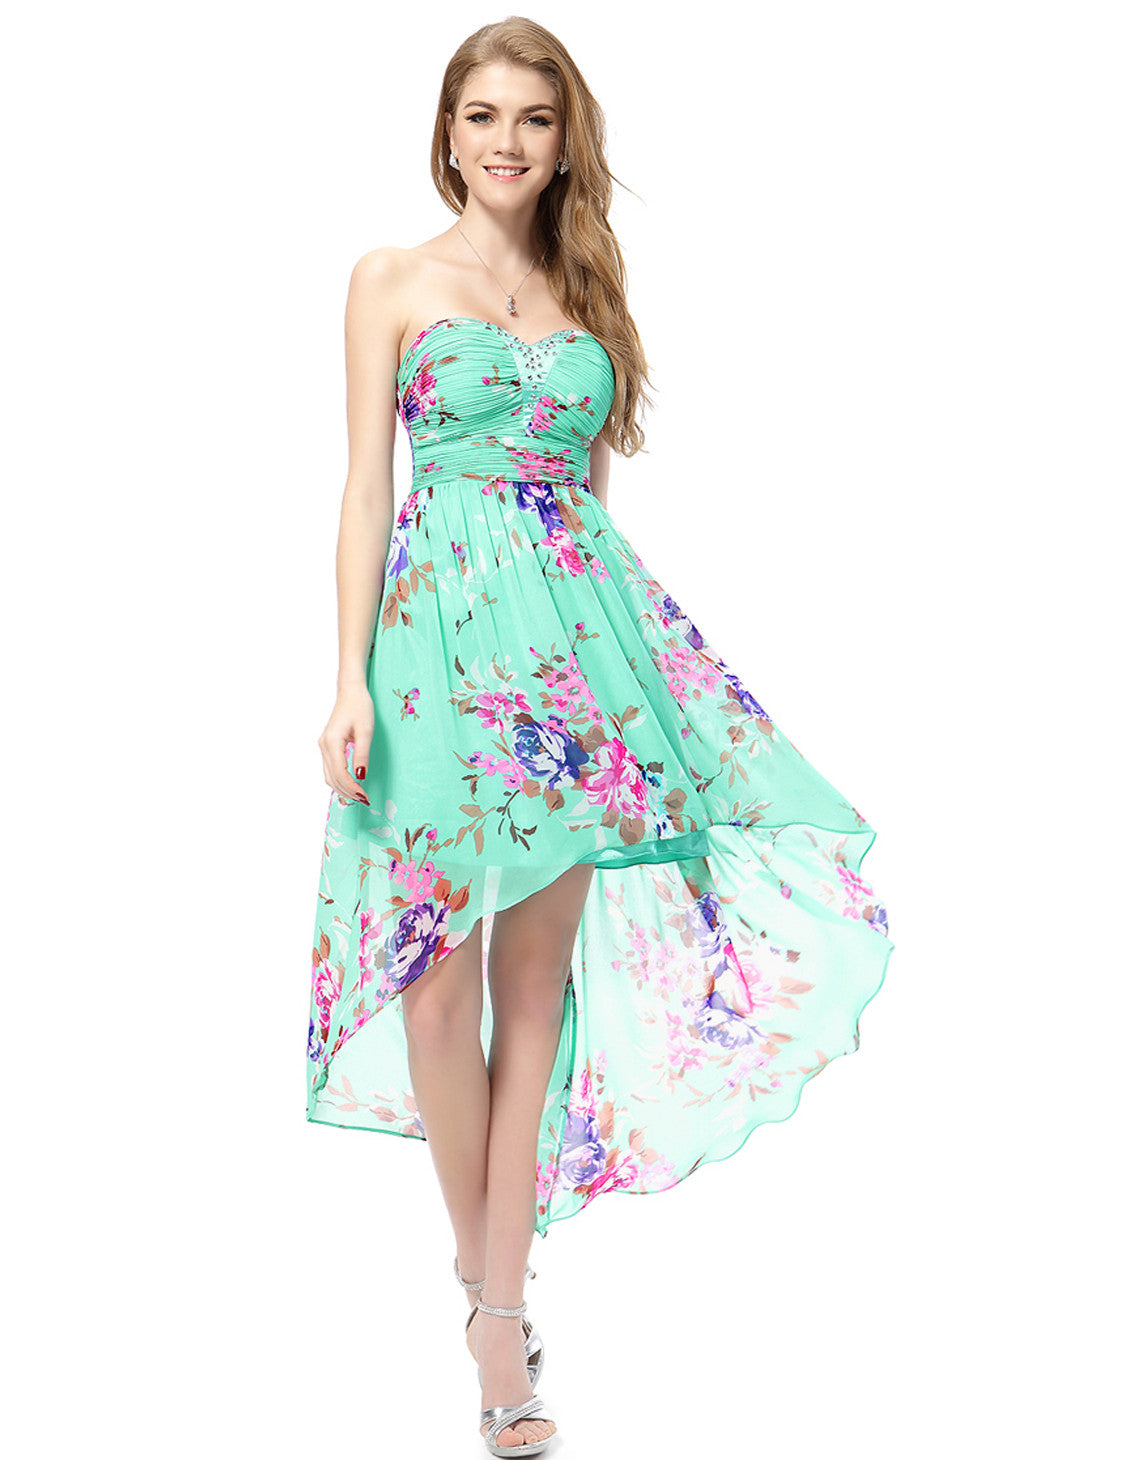 Blue Strapless Neckline Floral Print Hi-low Dress